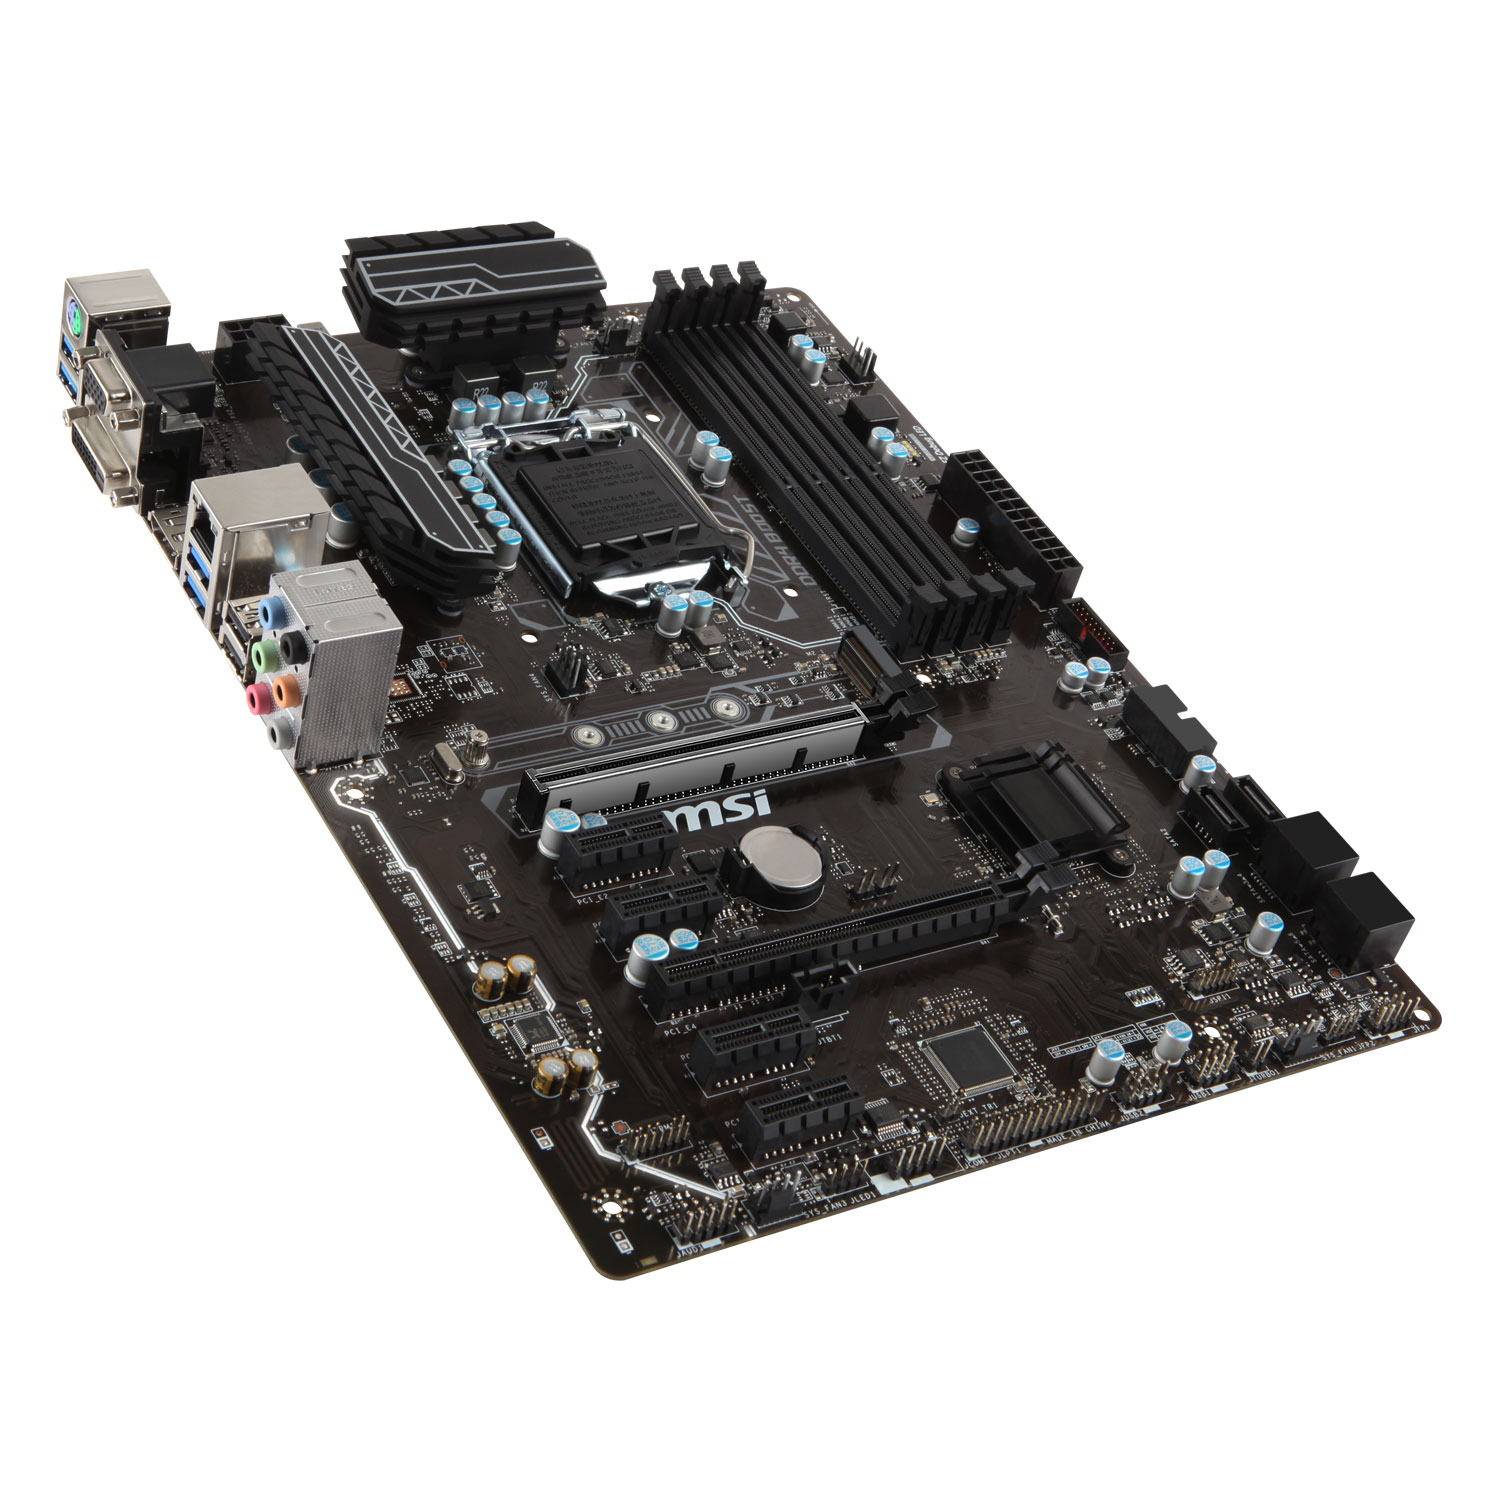 Carte mère MSI Z270-A Pro Socket 1151 (Intel Z270 Express) ATX, informatique ile de la Réunion 974